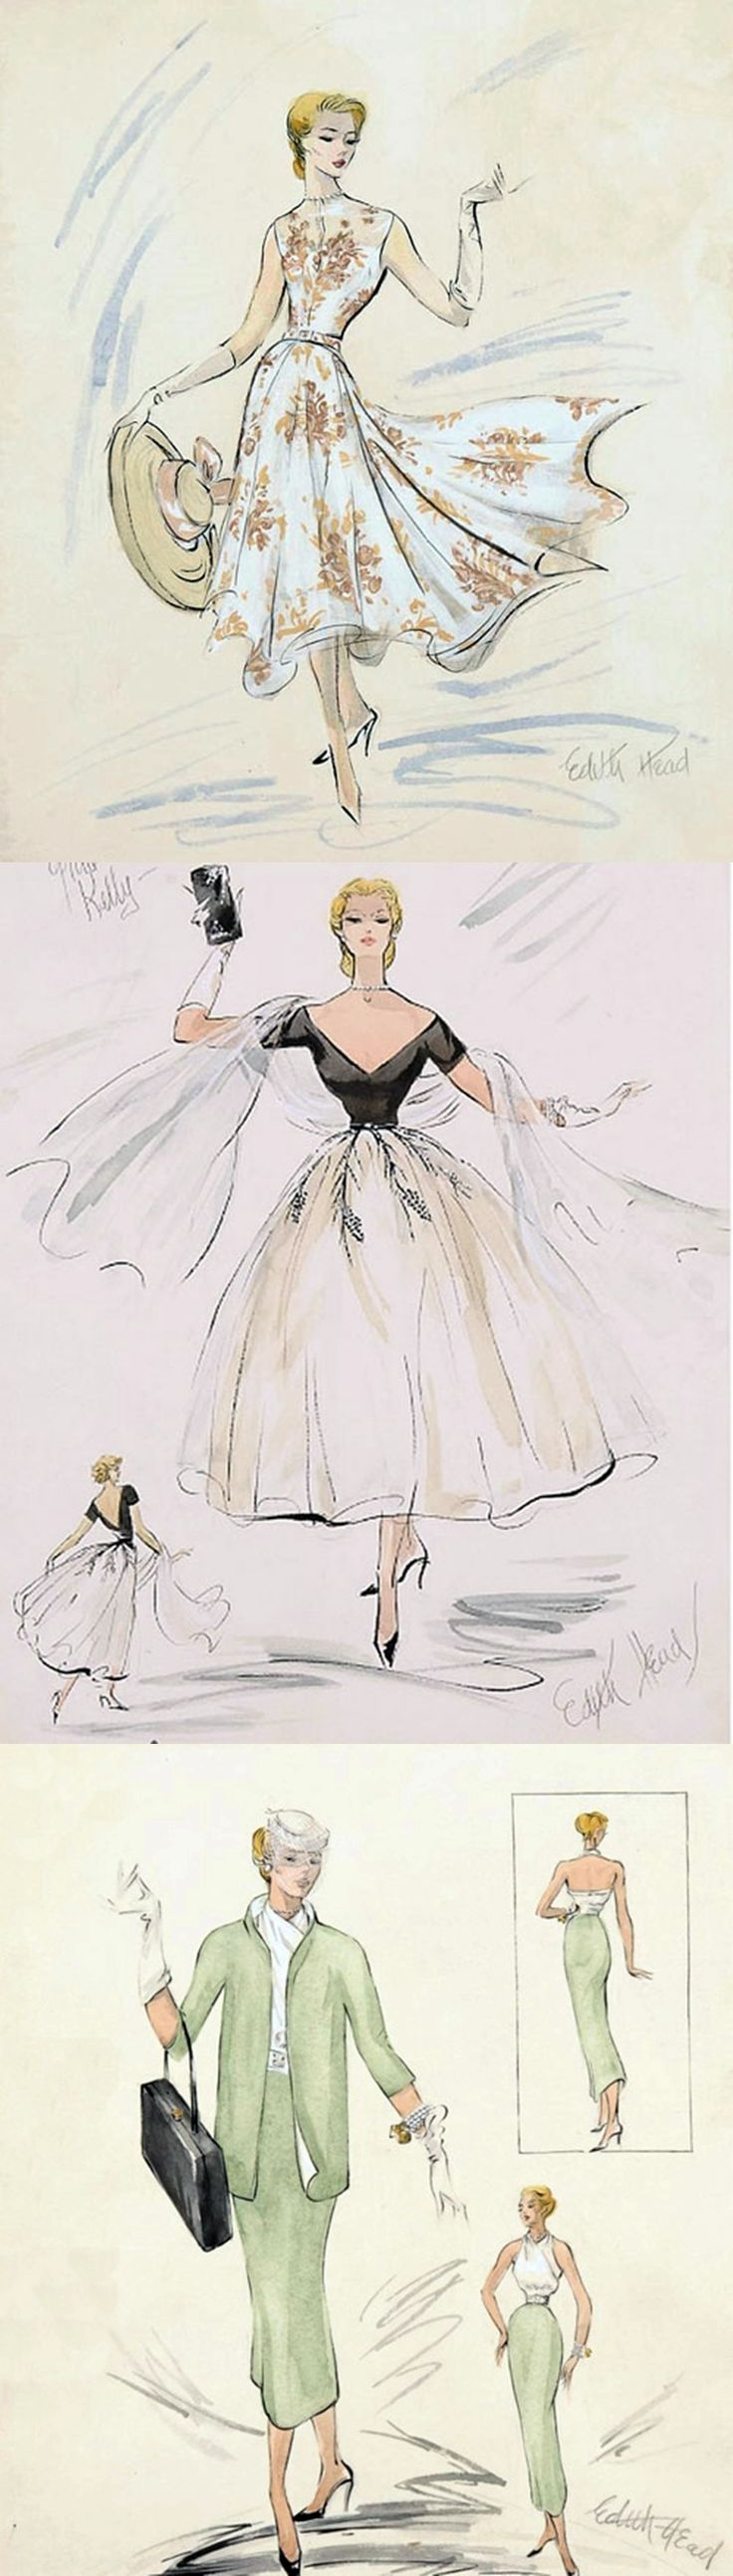 Edith Head's costume design sketches for Grace Kelly in Rear Window